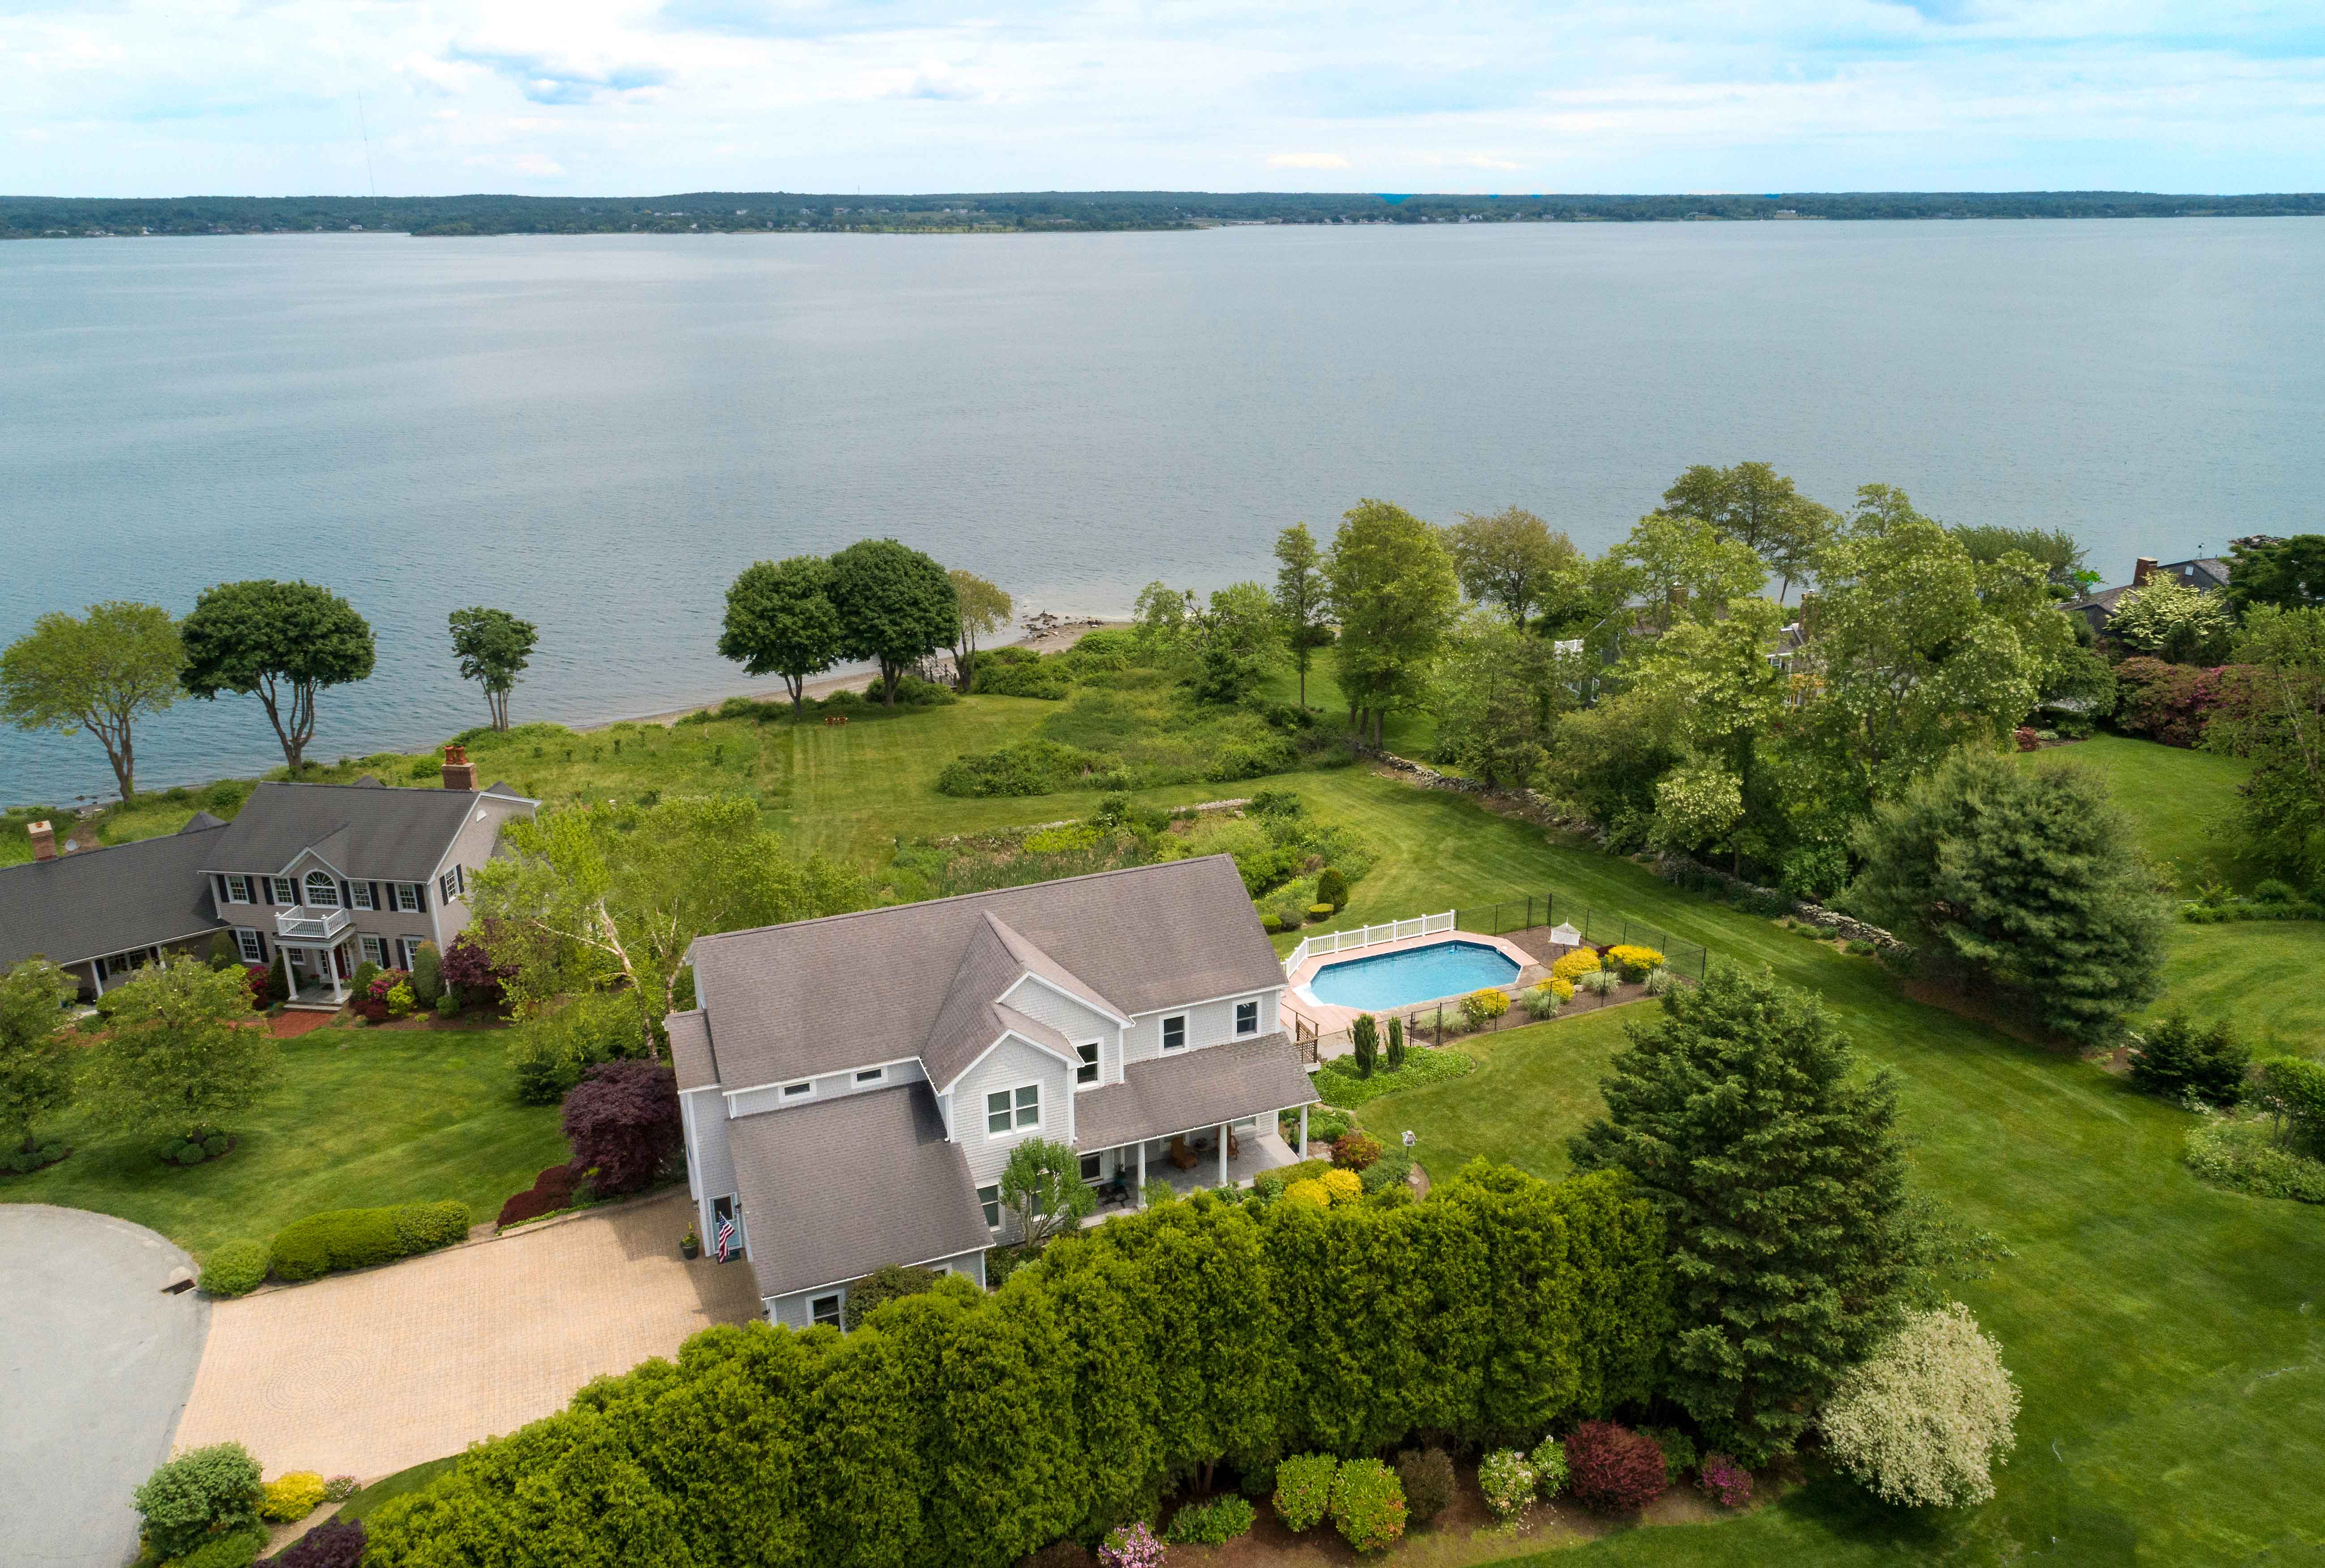 WATERFRONT COLONIAL SELLS FOR $1.755M, MARKING 2ND HIGHEST SALE IN PORTSMOUTH YEAR-TO-DATE*